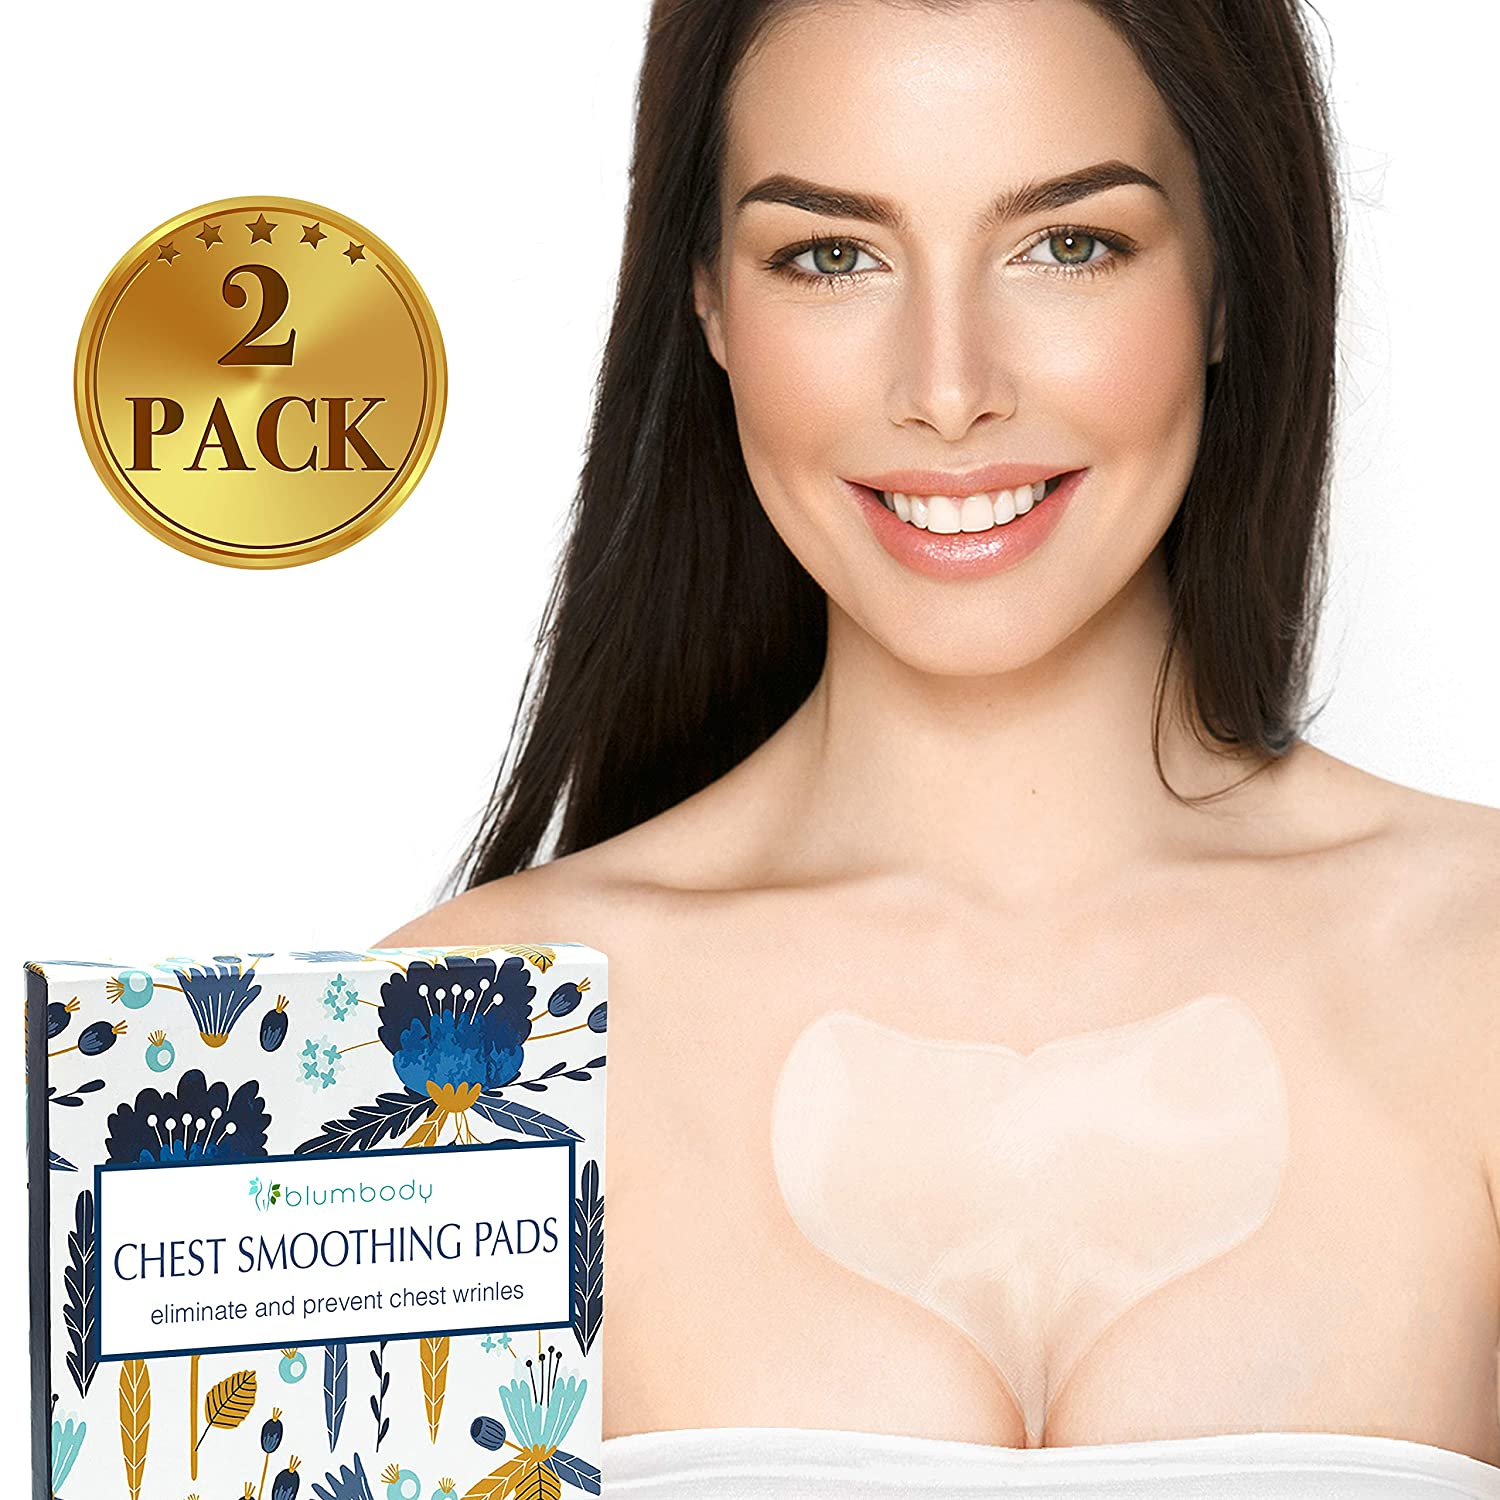 Decollete Pad for Chest Wrinkles - Set of 2 Silicone Chest Pads for Decollete and Cleavage Wrinkles Prevention - Reusable Overnight Anti Wrinkle Remover - 4 Eye Smoothing Patches Bonus